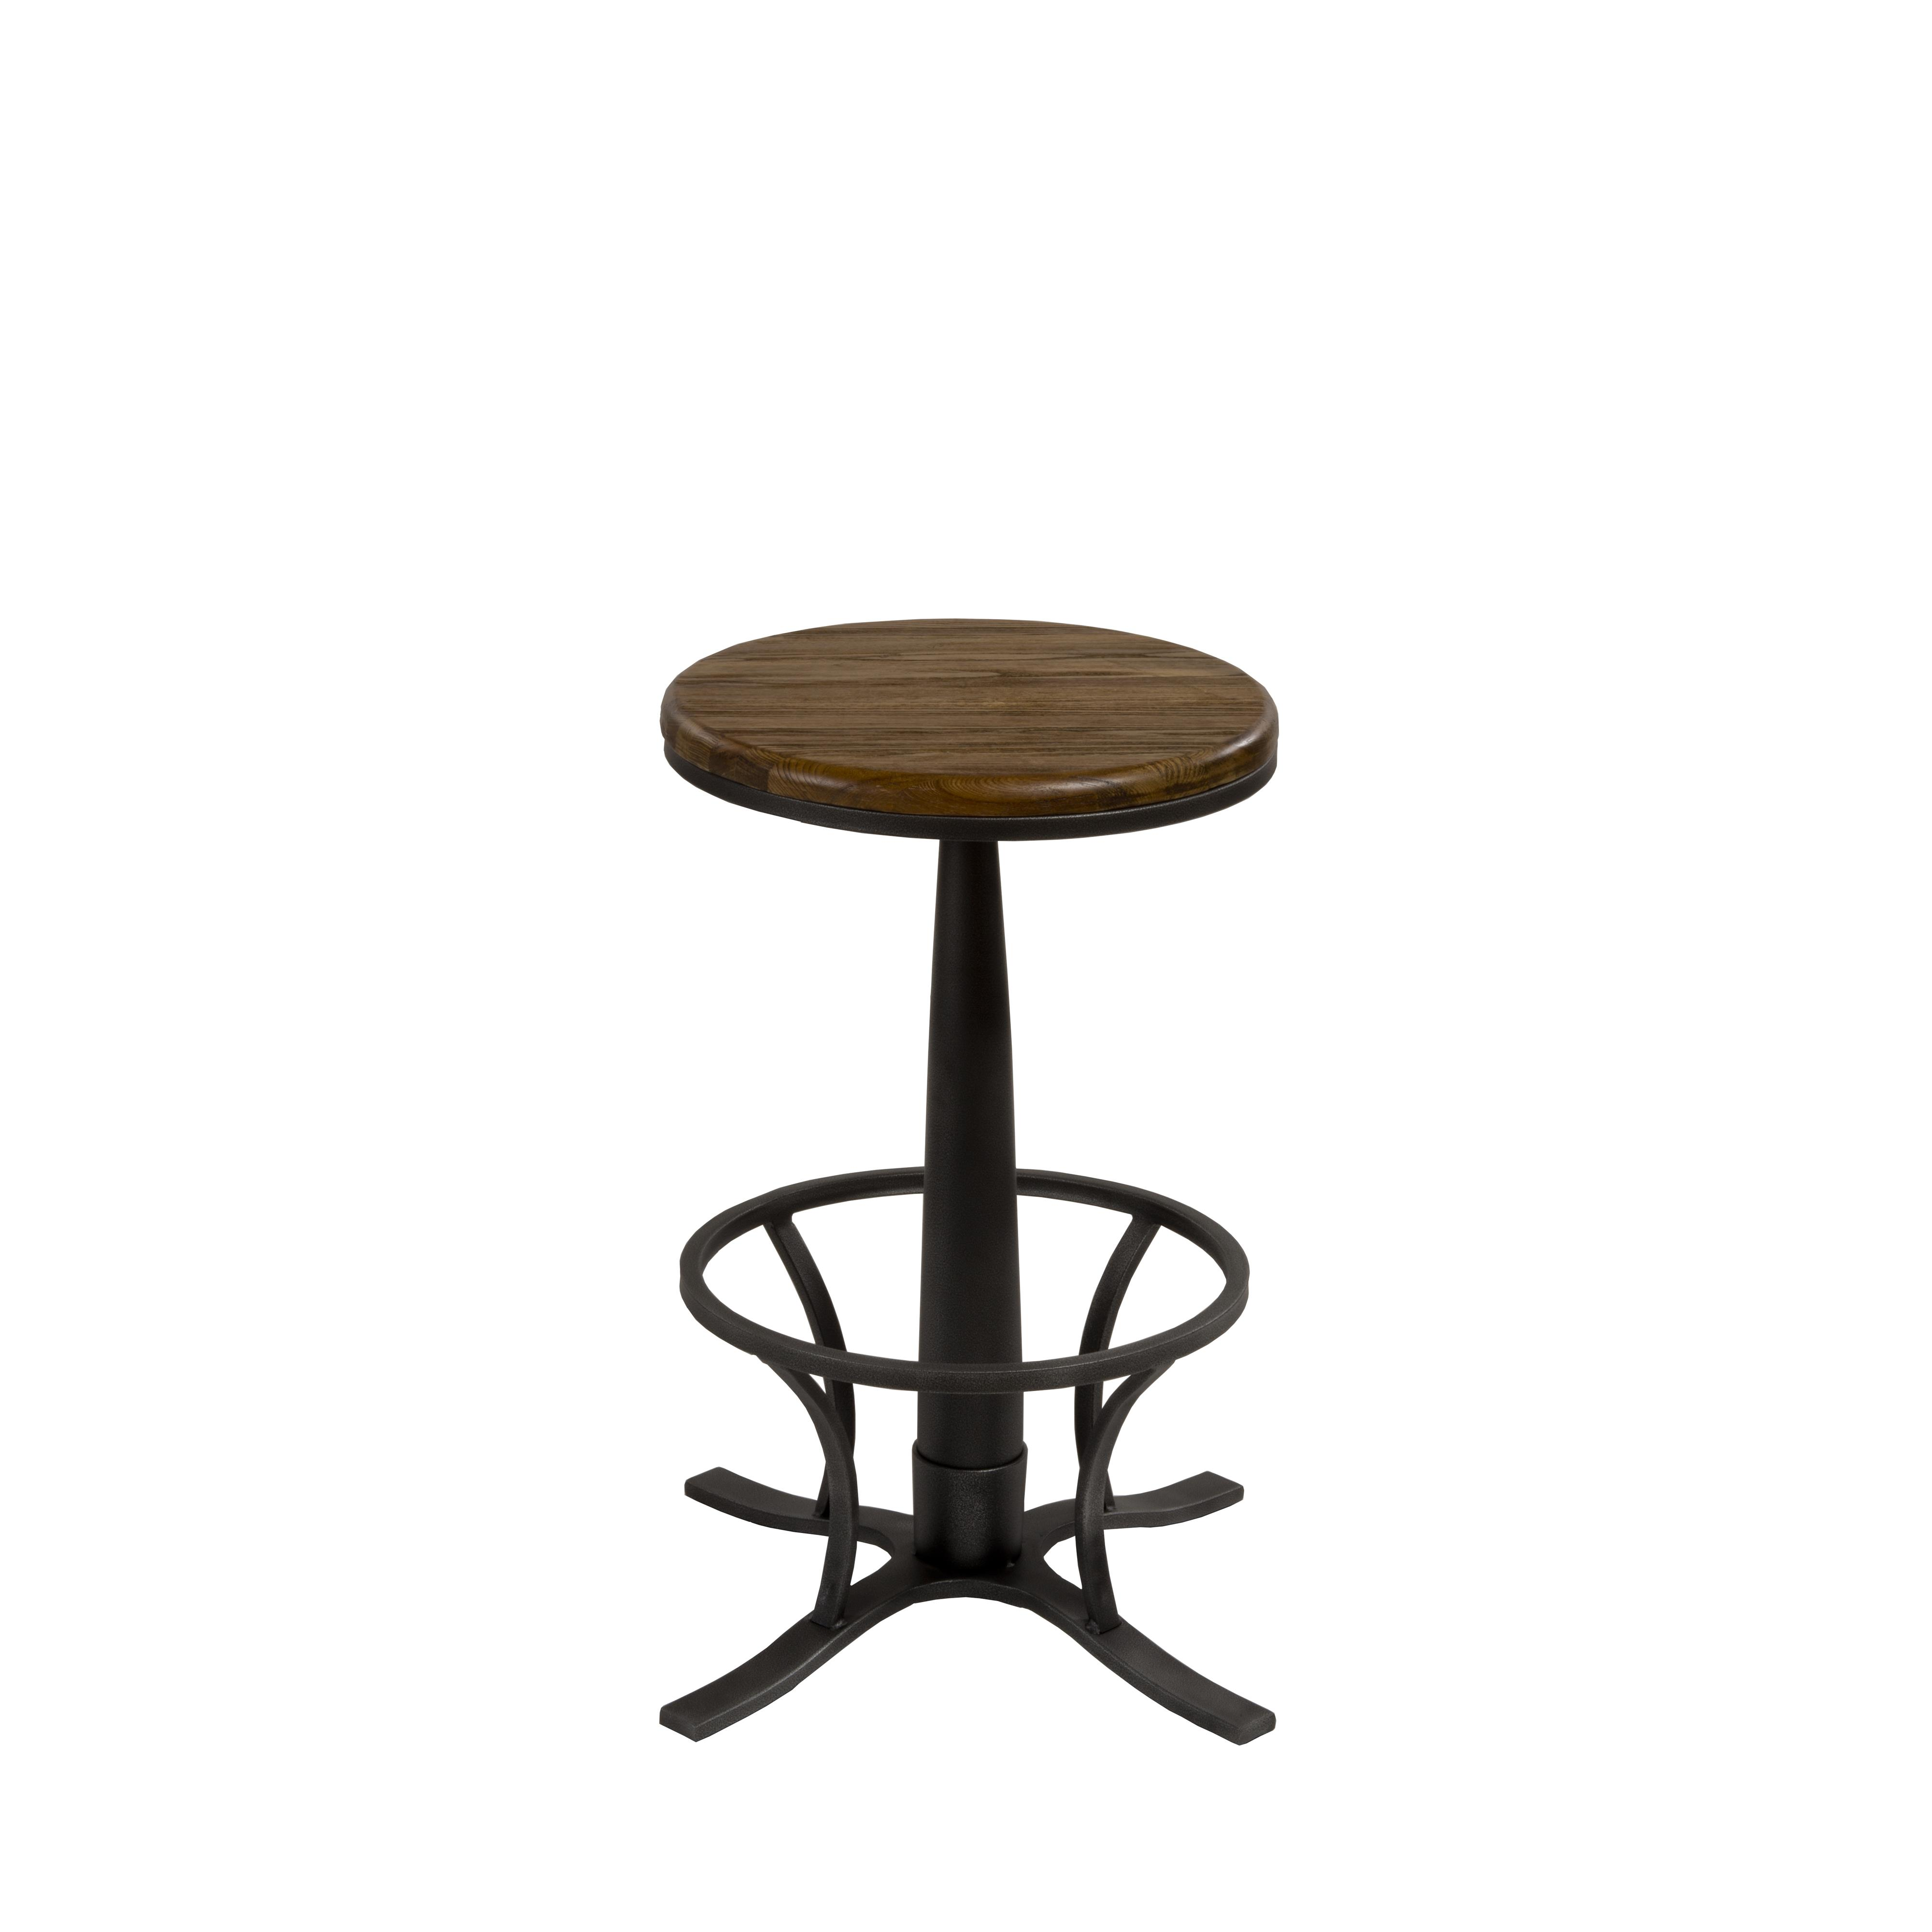 Hillsdale Backless Bar Stools Rivage Backless Swivel Bar Stool - Item Number: 5441-833